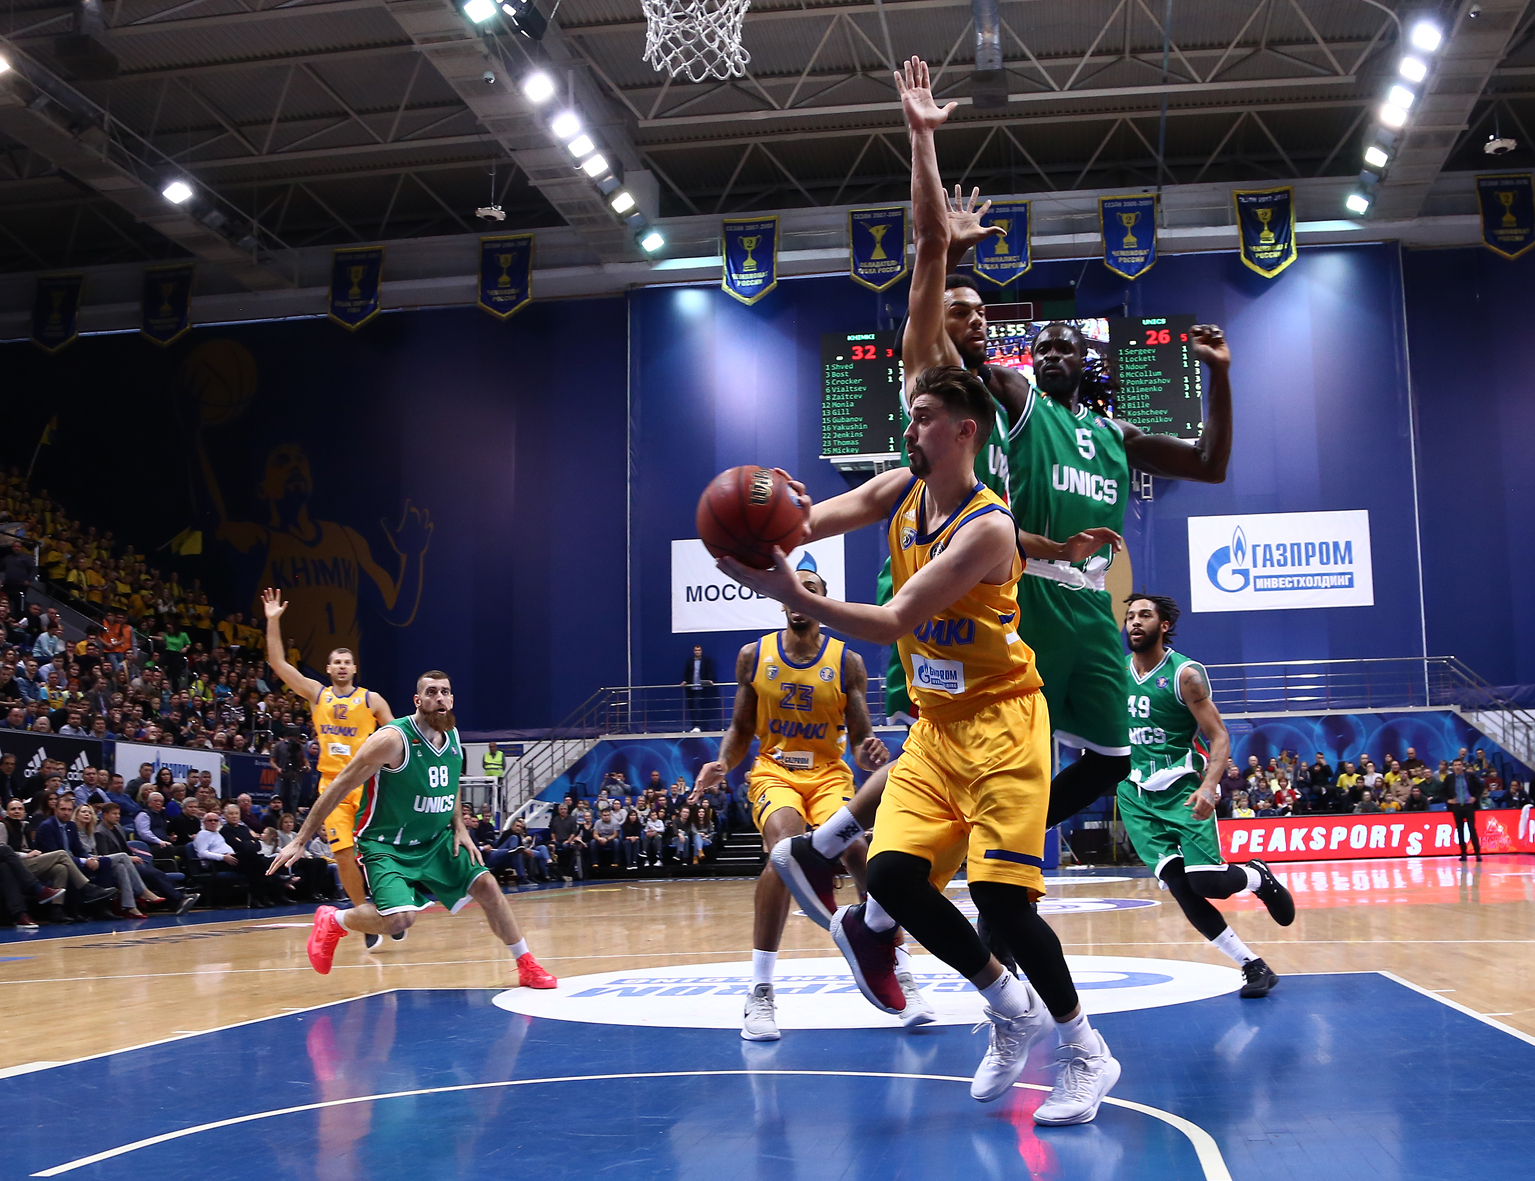 Khimki Takes Down UNICS, Moves Into 1st